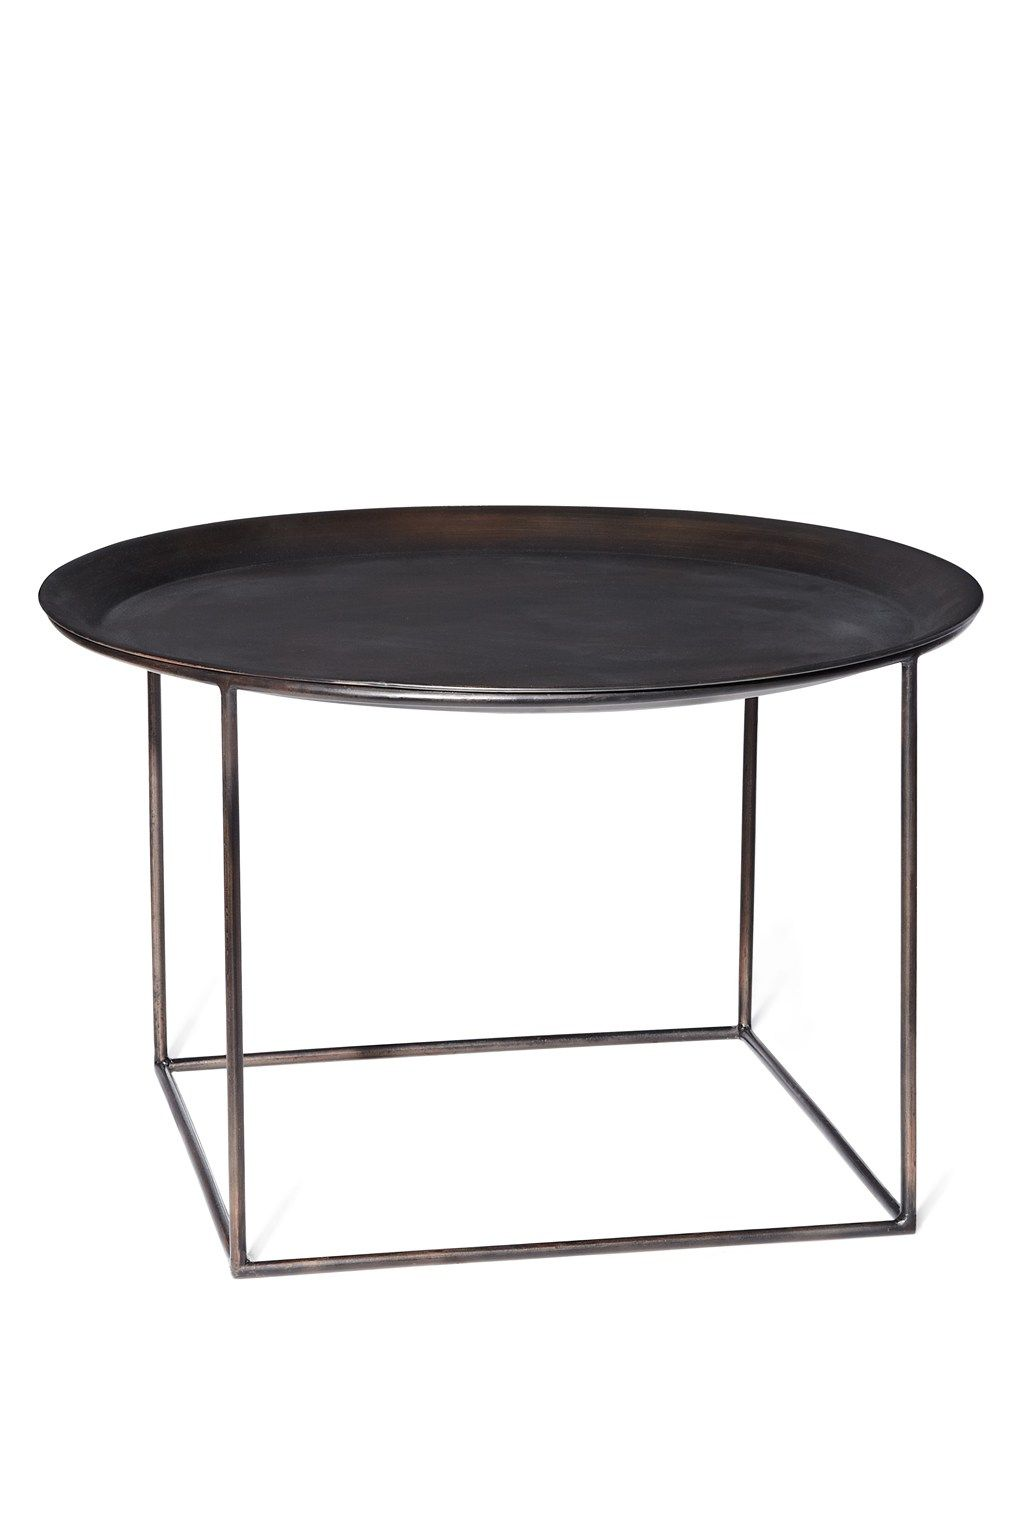 French connection round steel coffee table furniture french connection round steel coffee table geotapseo Choice Image